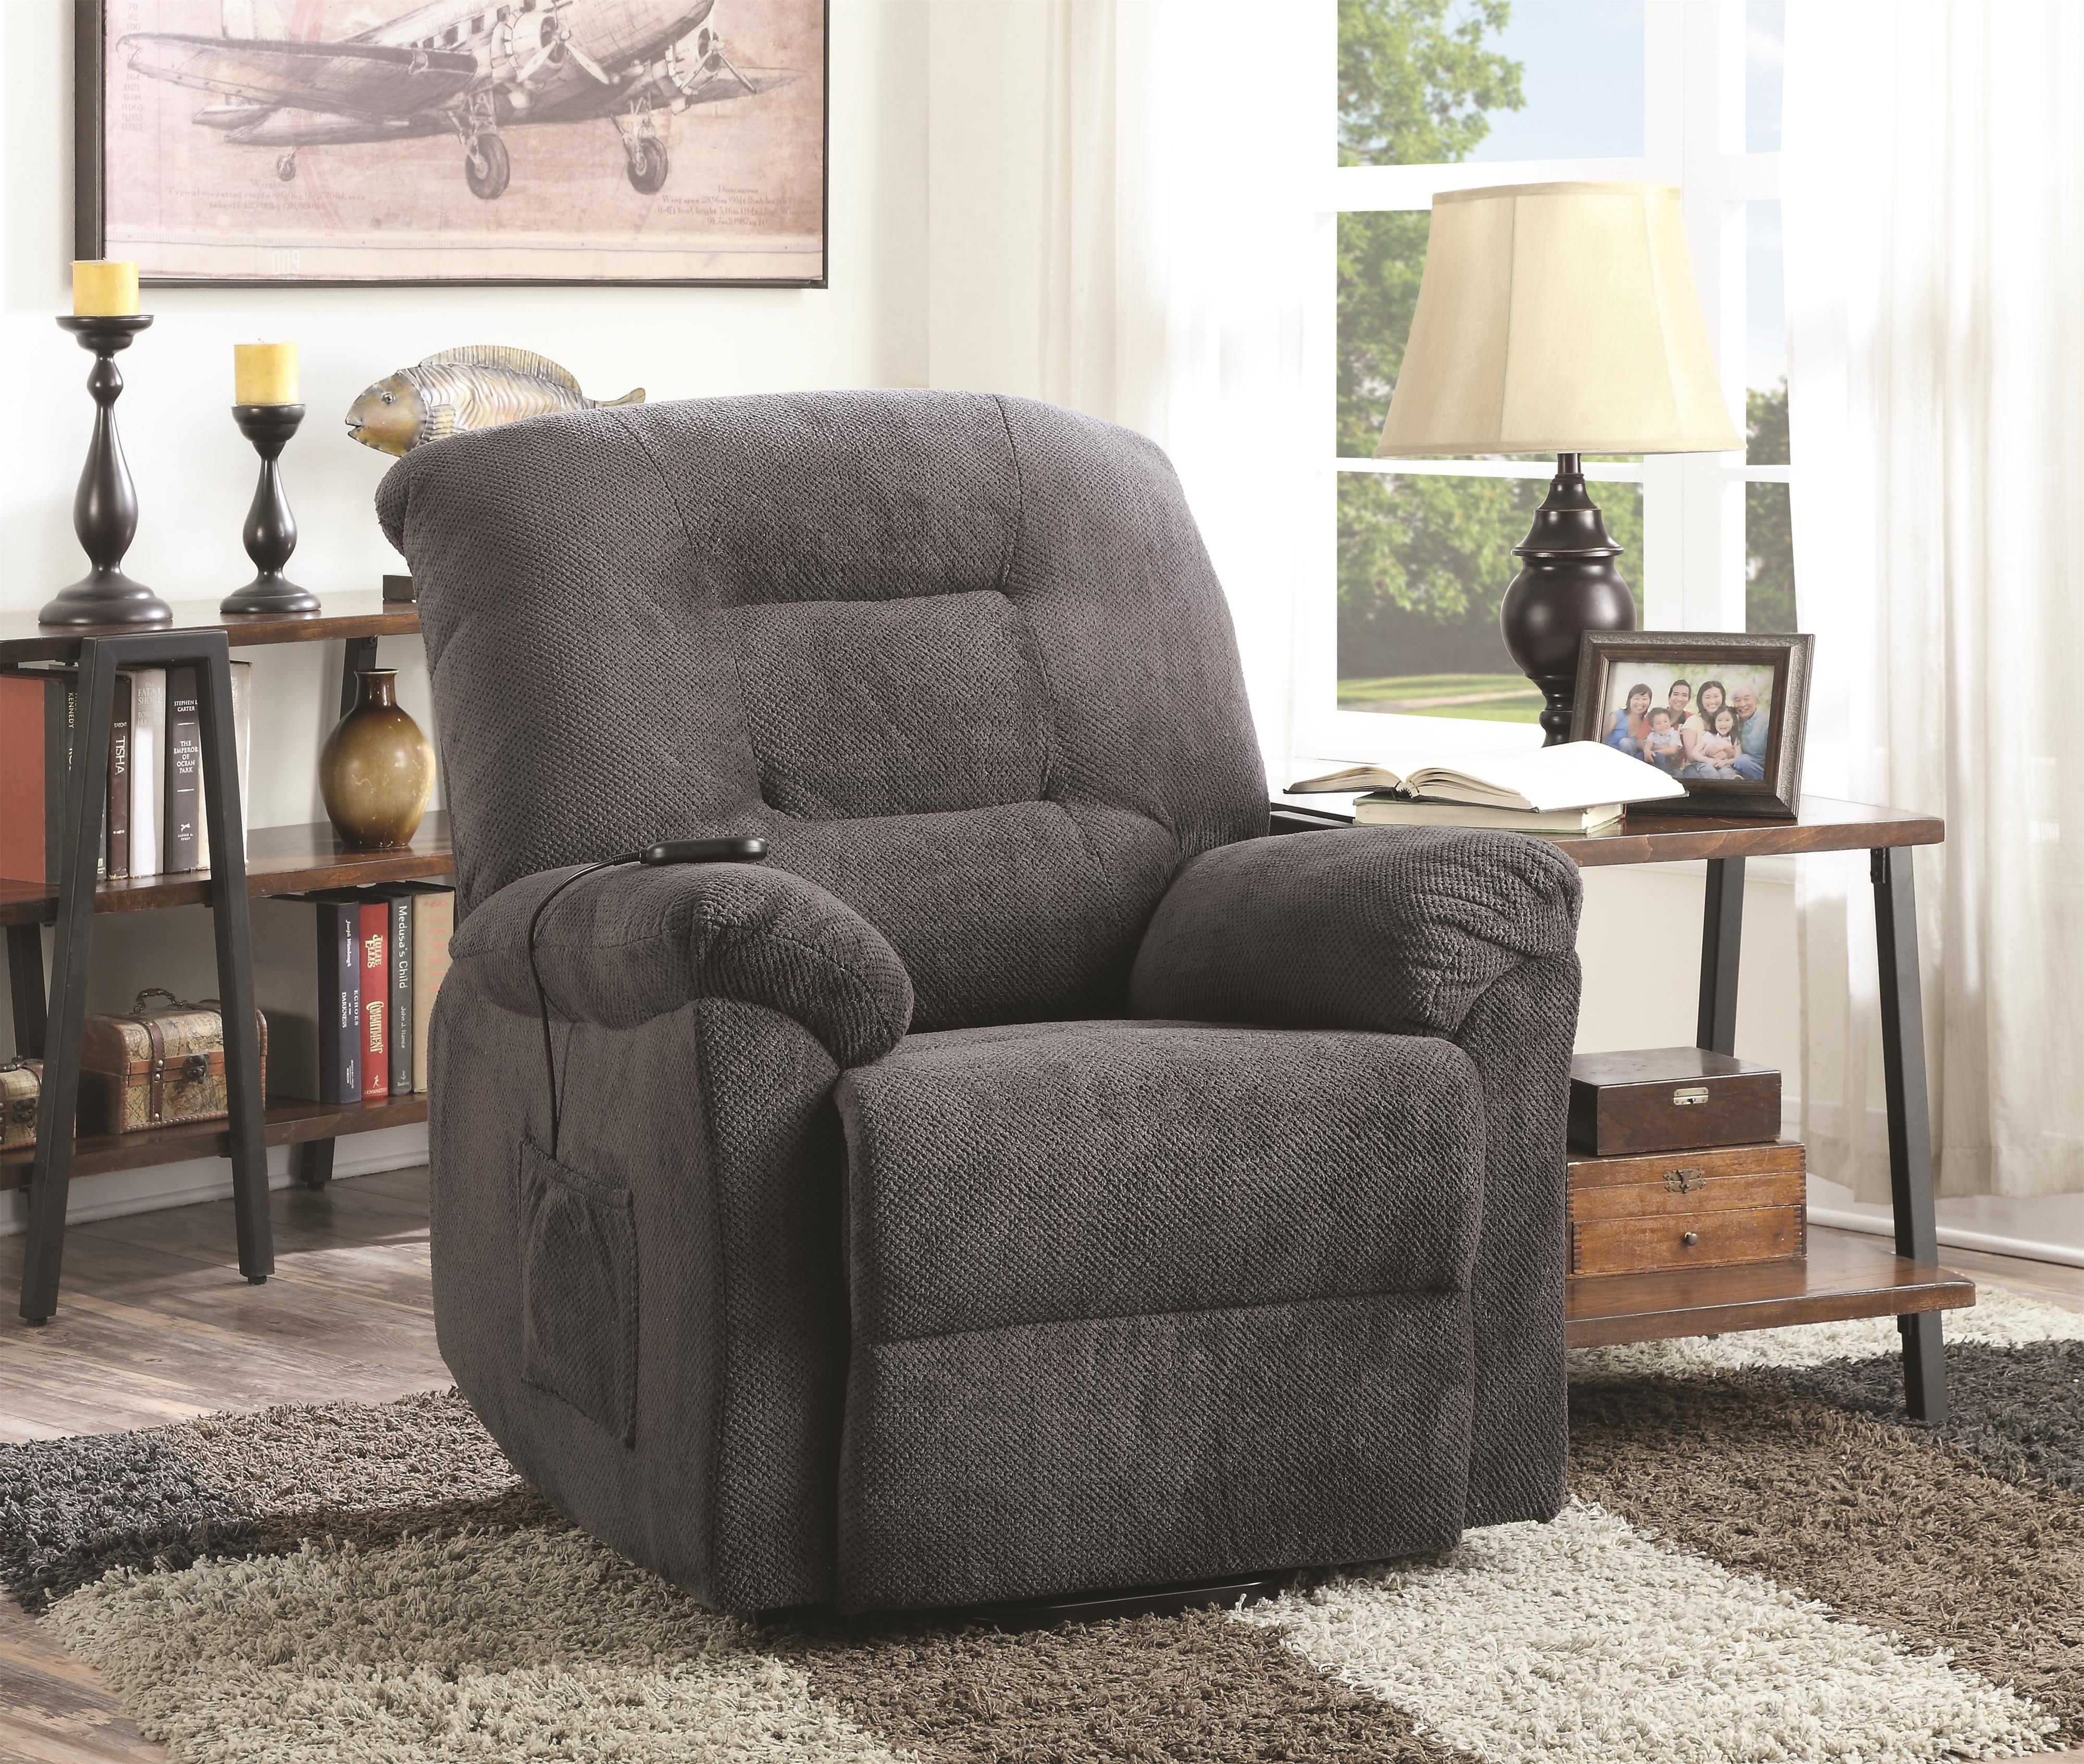 Coaster Recliners Power Lift Recliner - Item Number: 600398